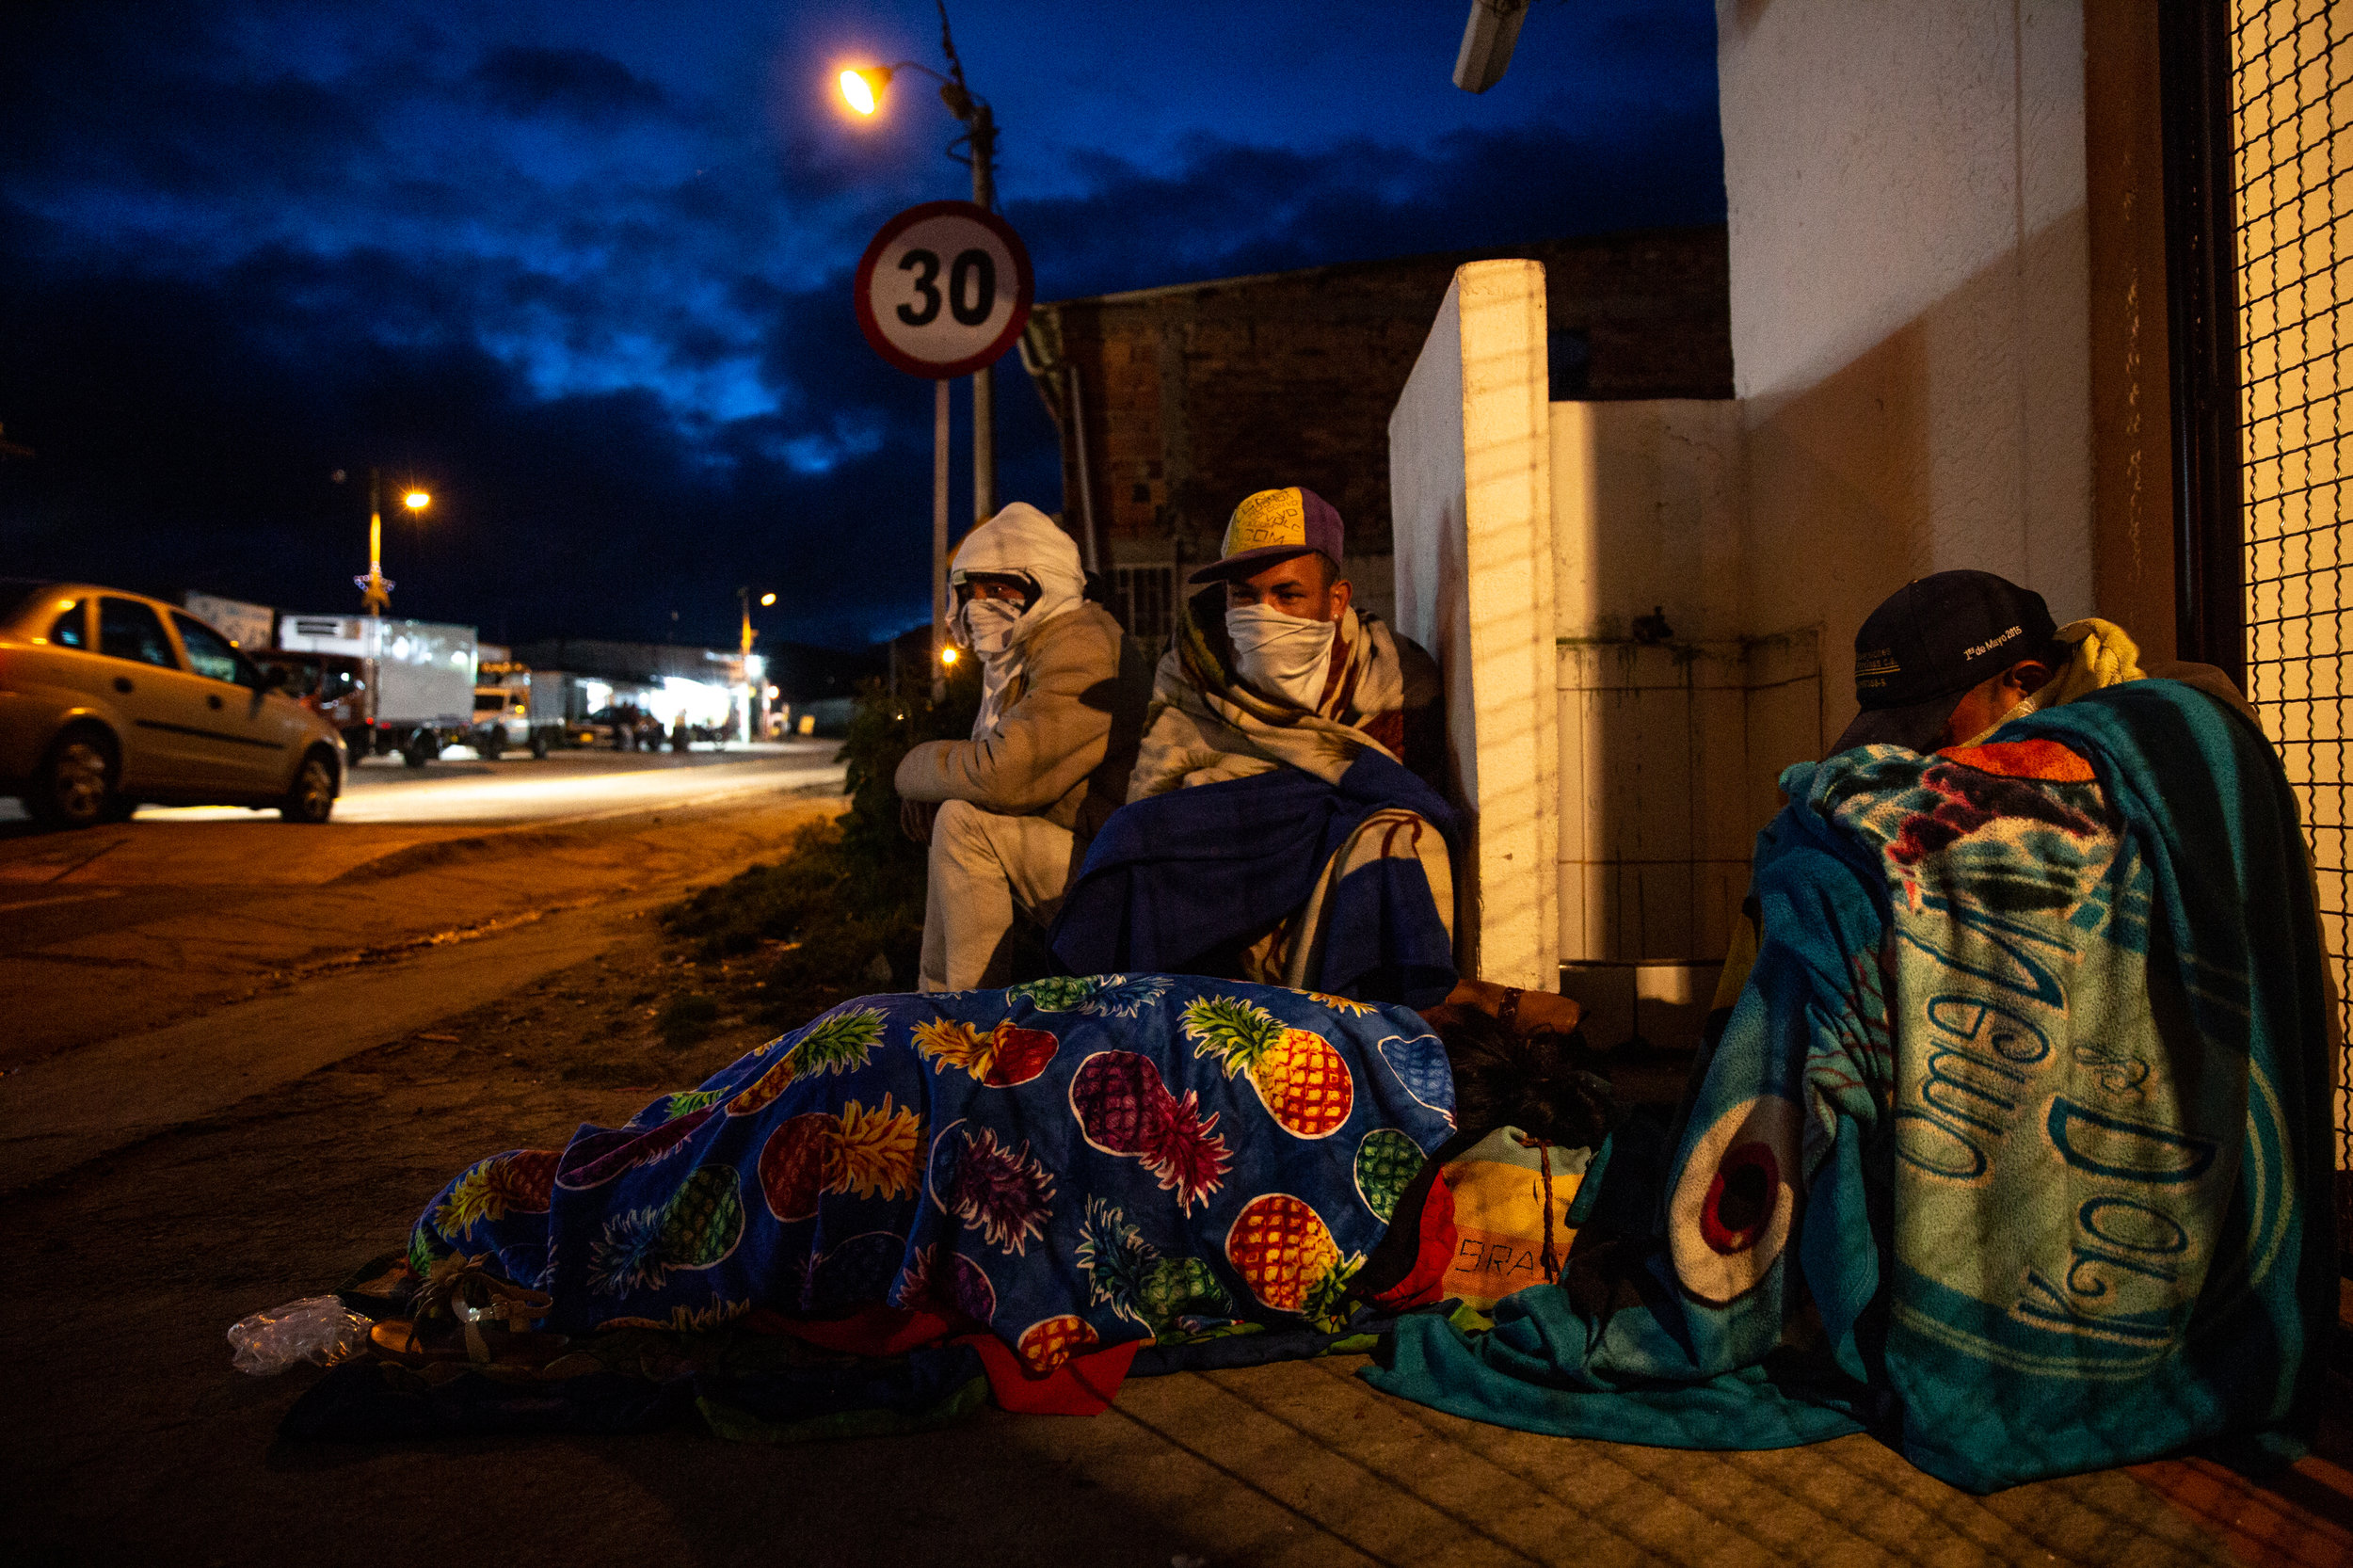 After a two-day trek from the Venezuelan border, migrants prepare to sleep outside in the cold highlands. La Laguna, Colombia.